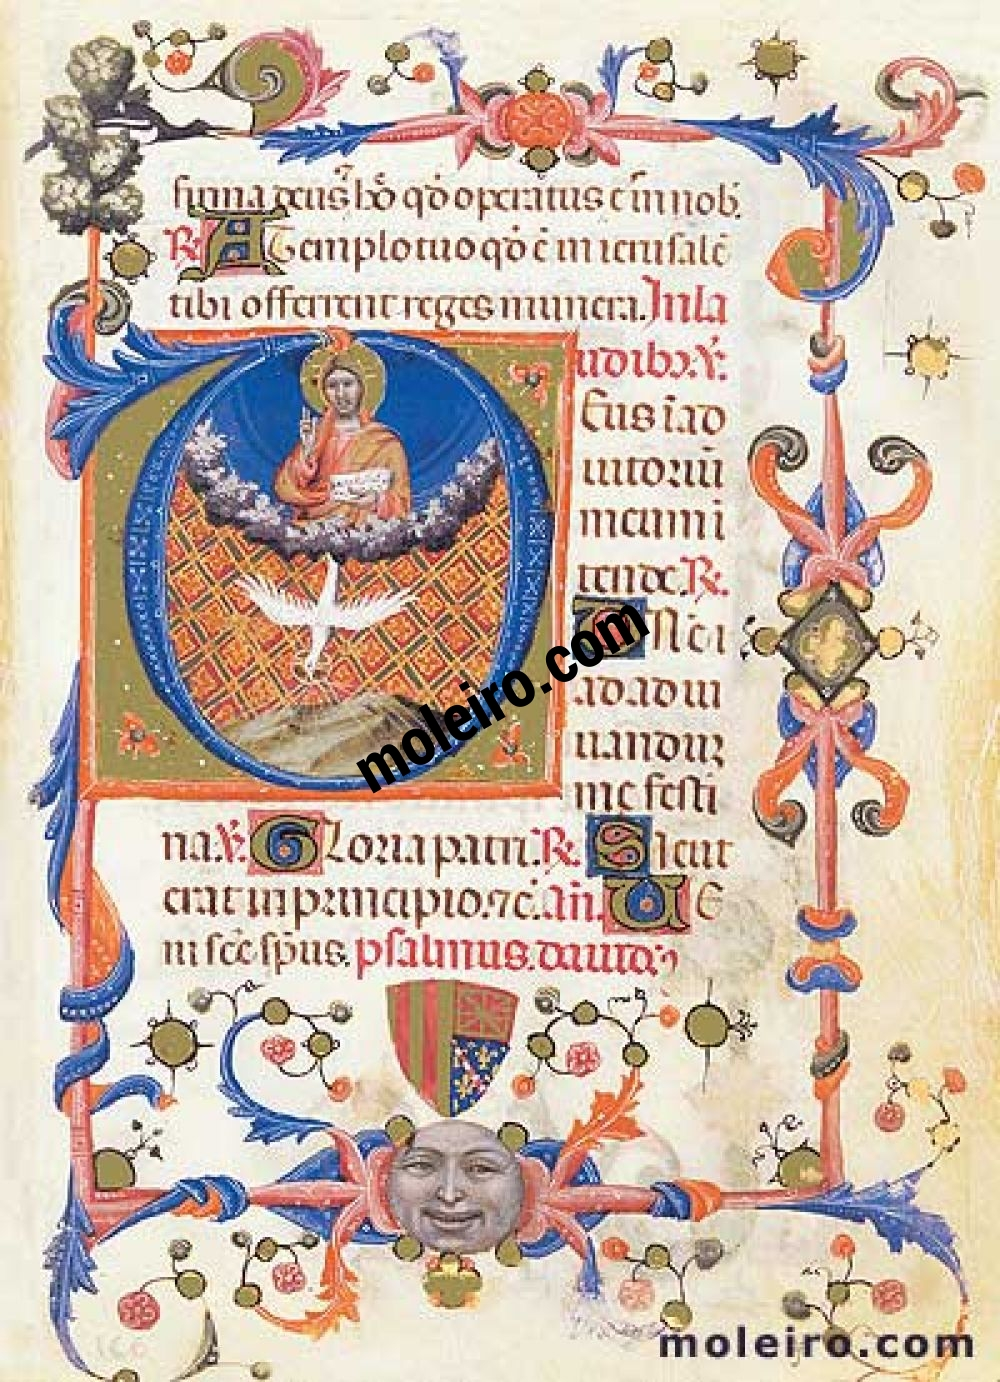 The Book of Hours of Maria of Navarre folio 1r